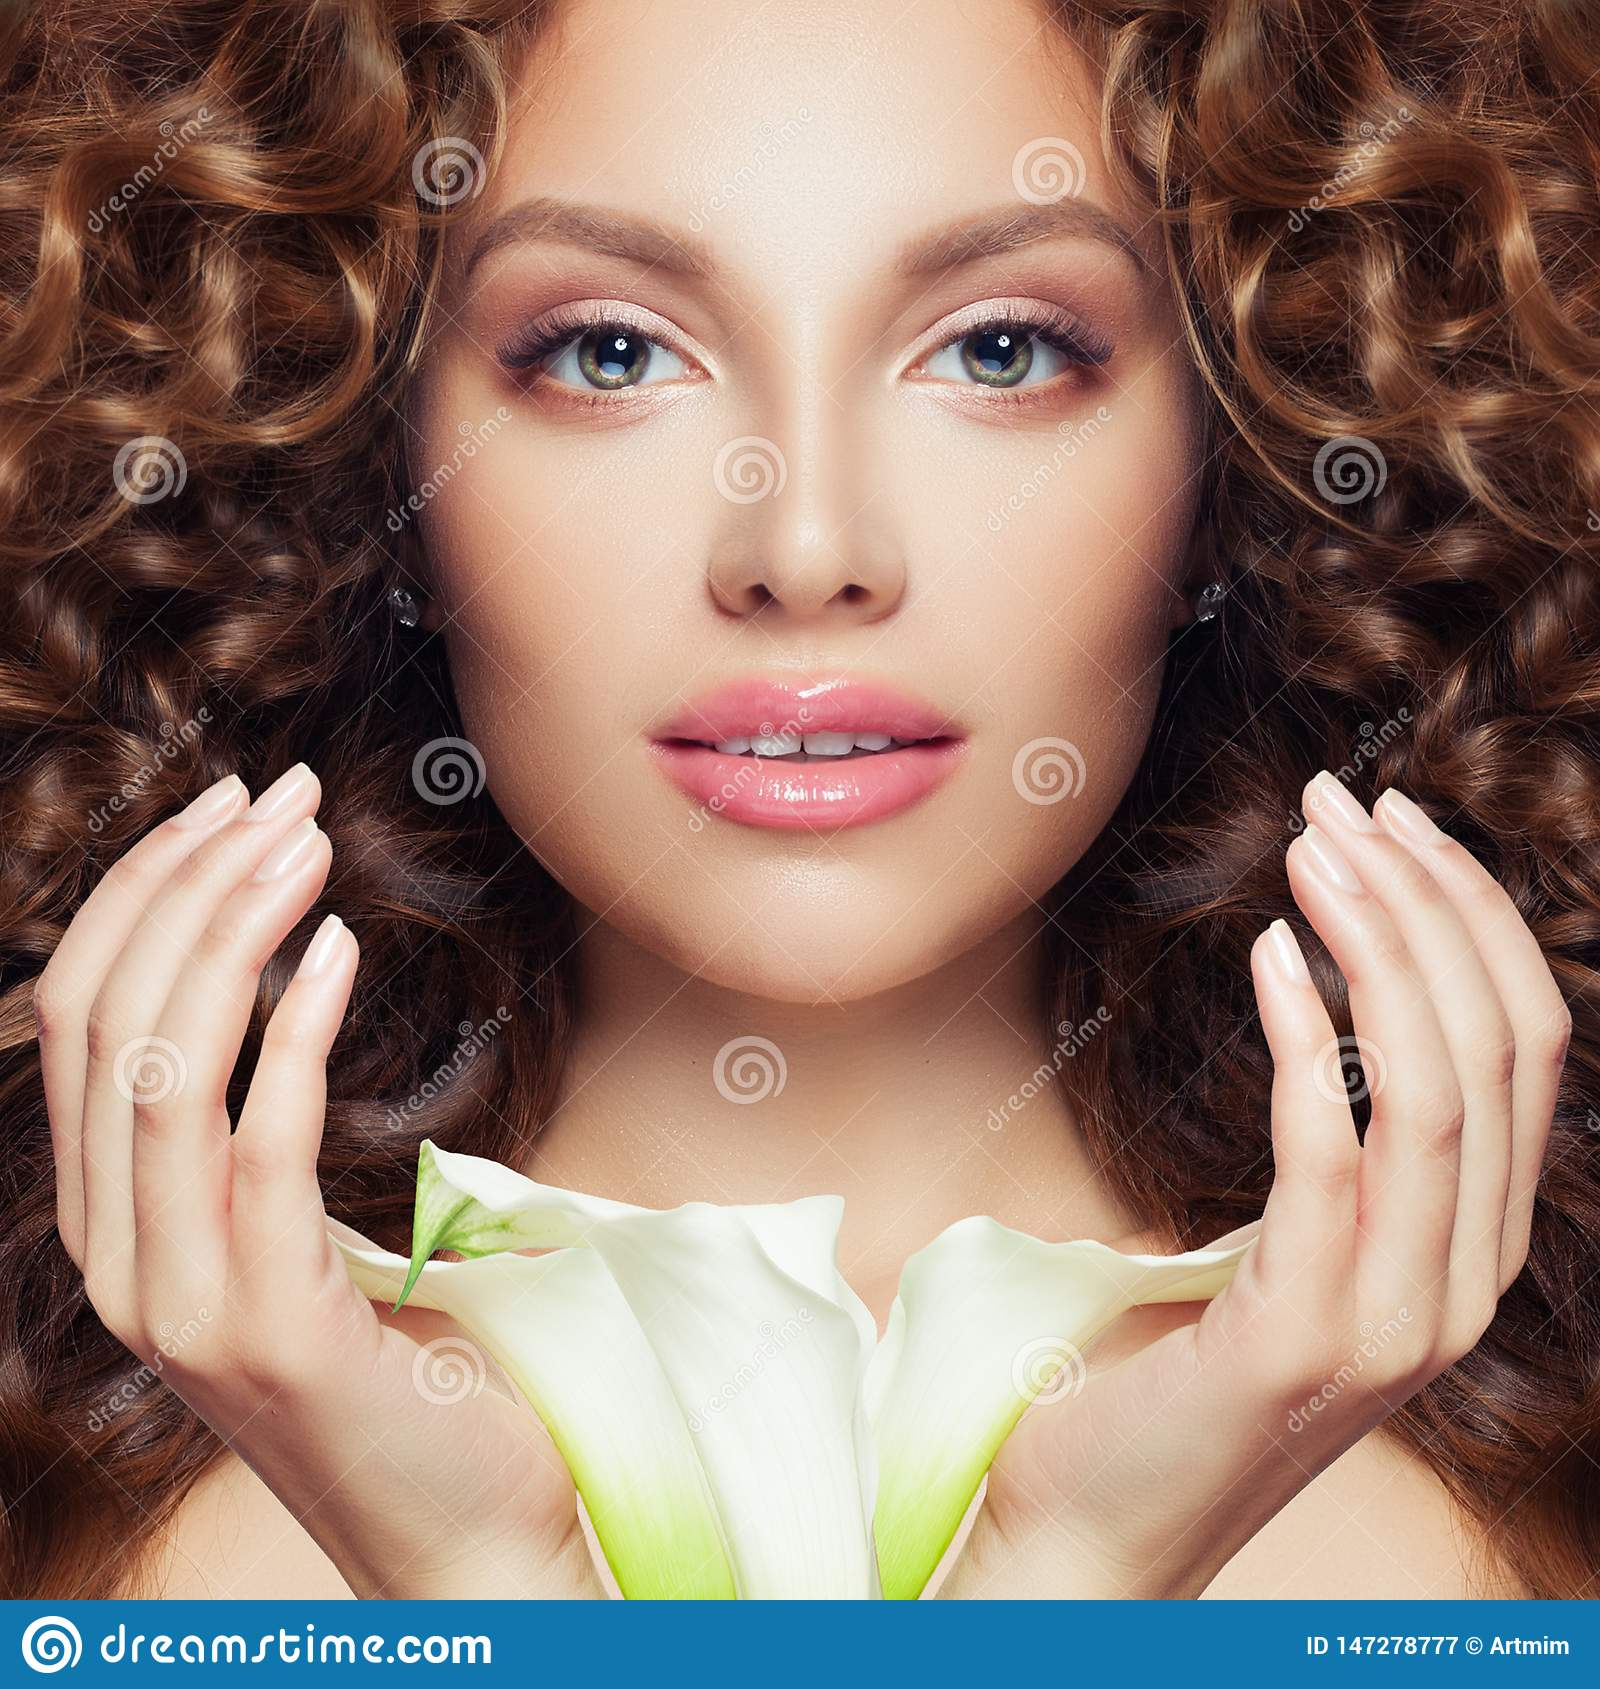 Pretty face. Perfect model woman with curly hair, clear skin and flower